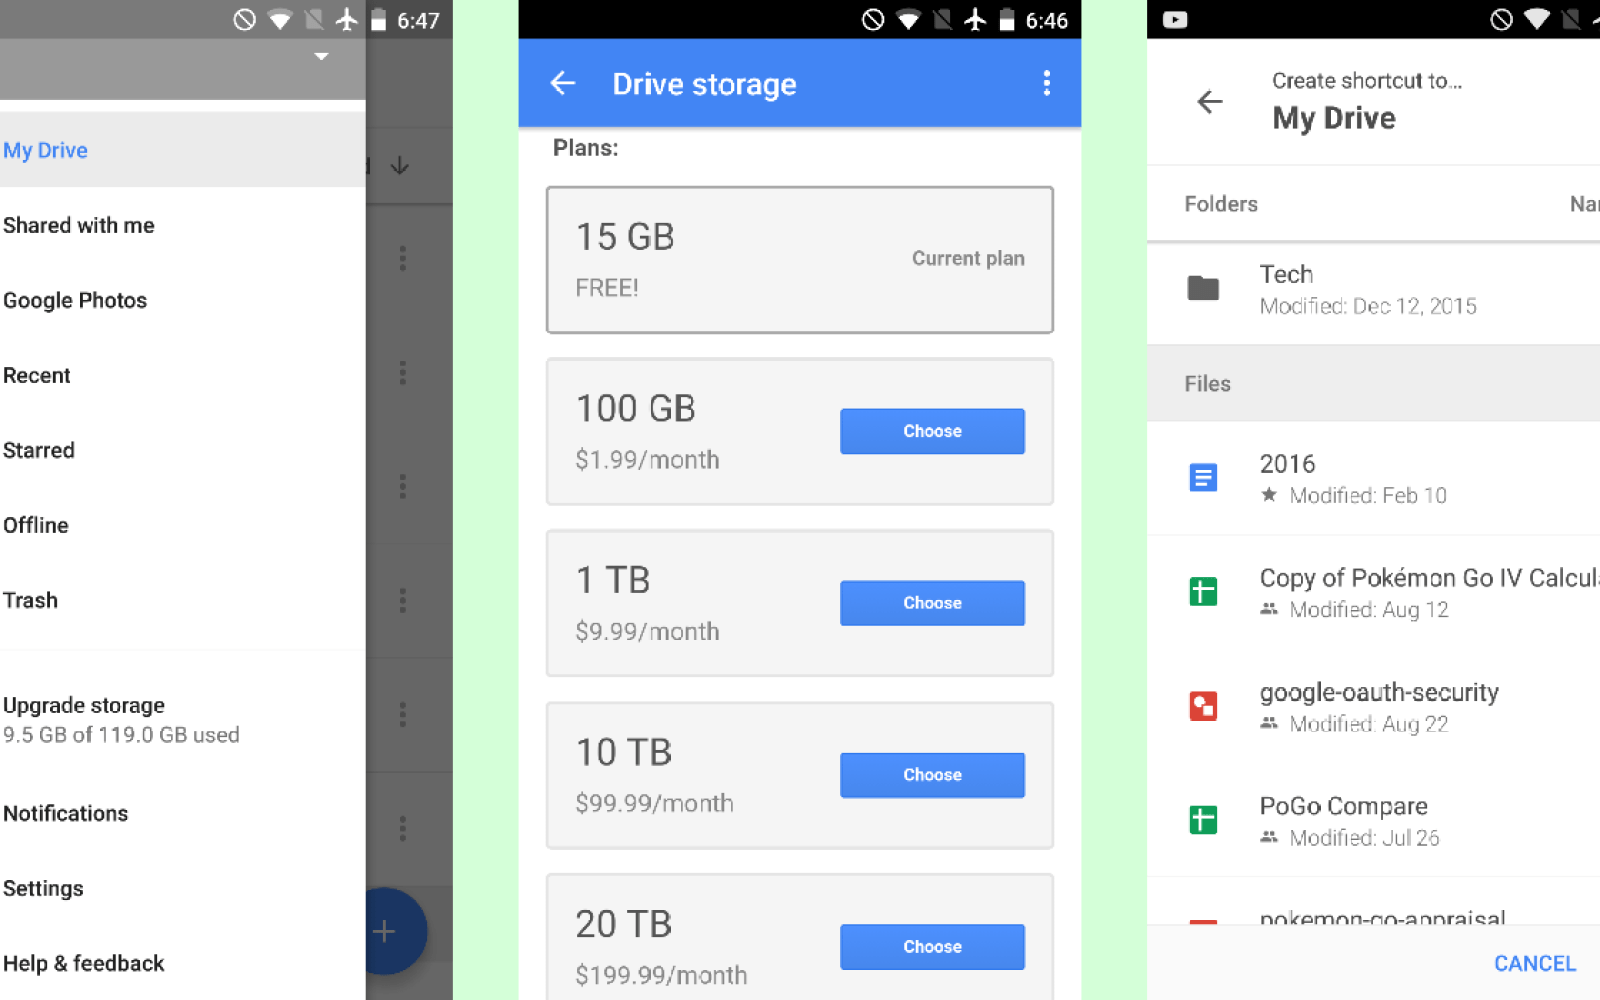 Google Drive update allows you to add file & folder shortcuts to the homescreen